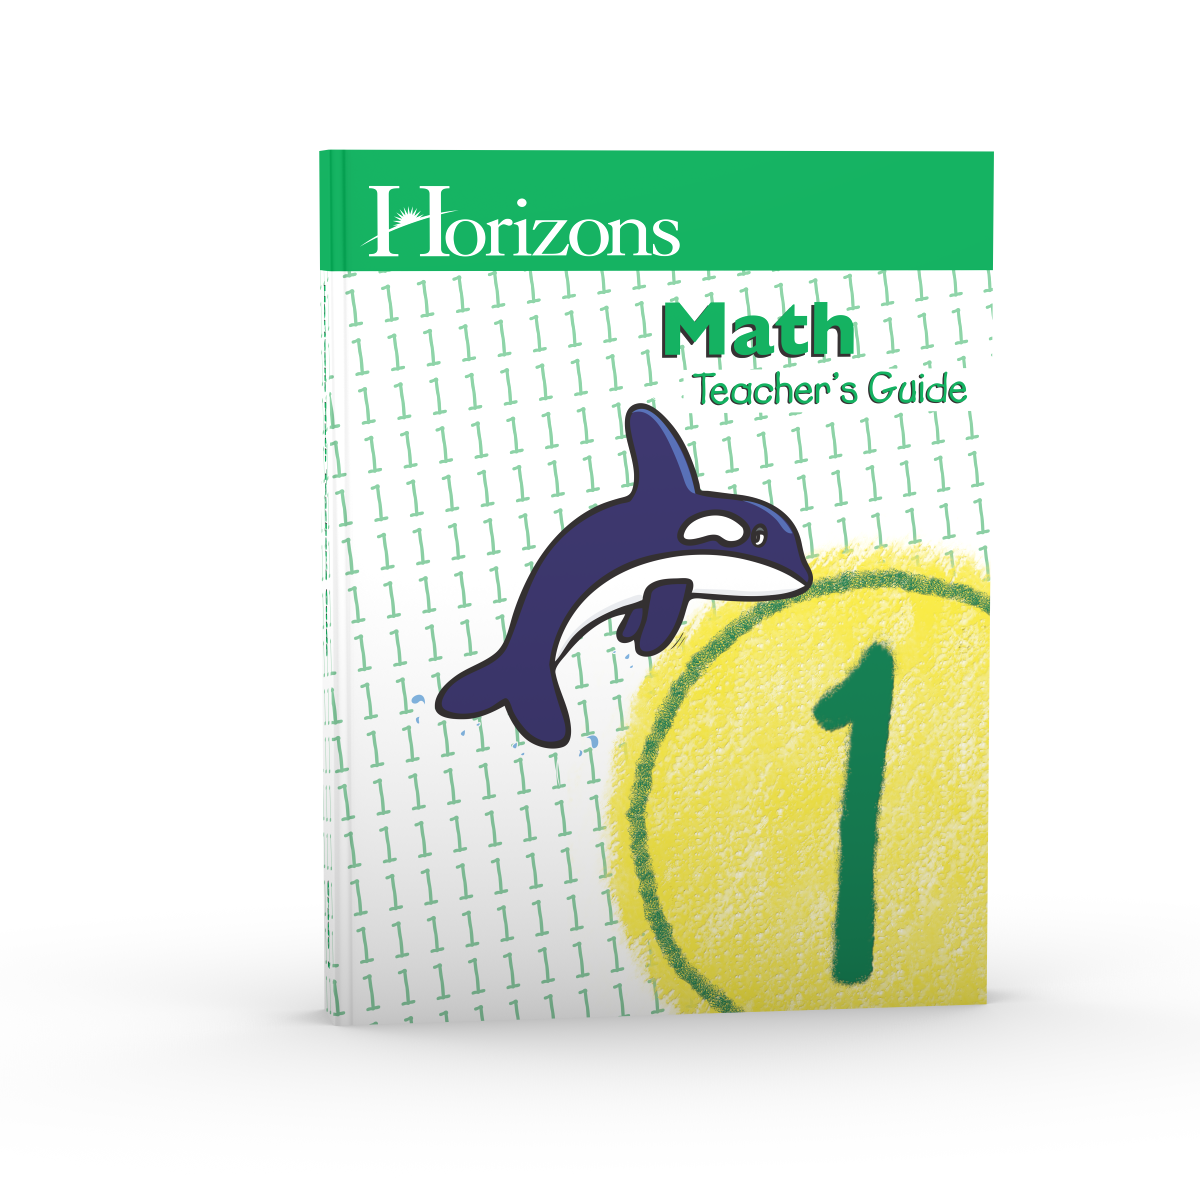 Horizons 1st Grade Math Teacher's Guide